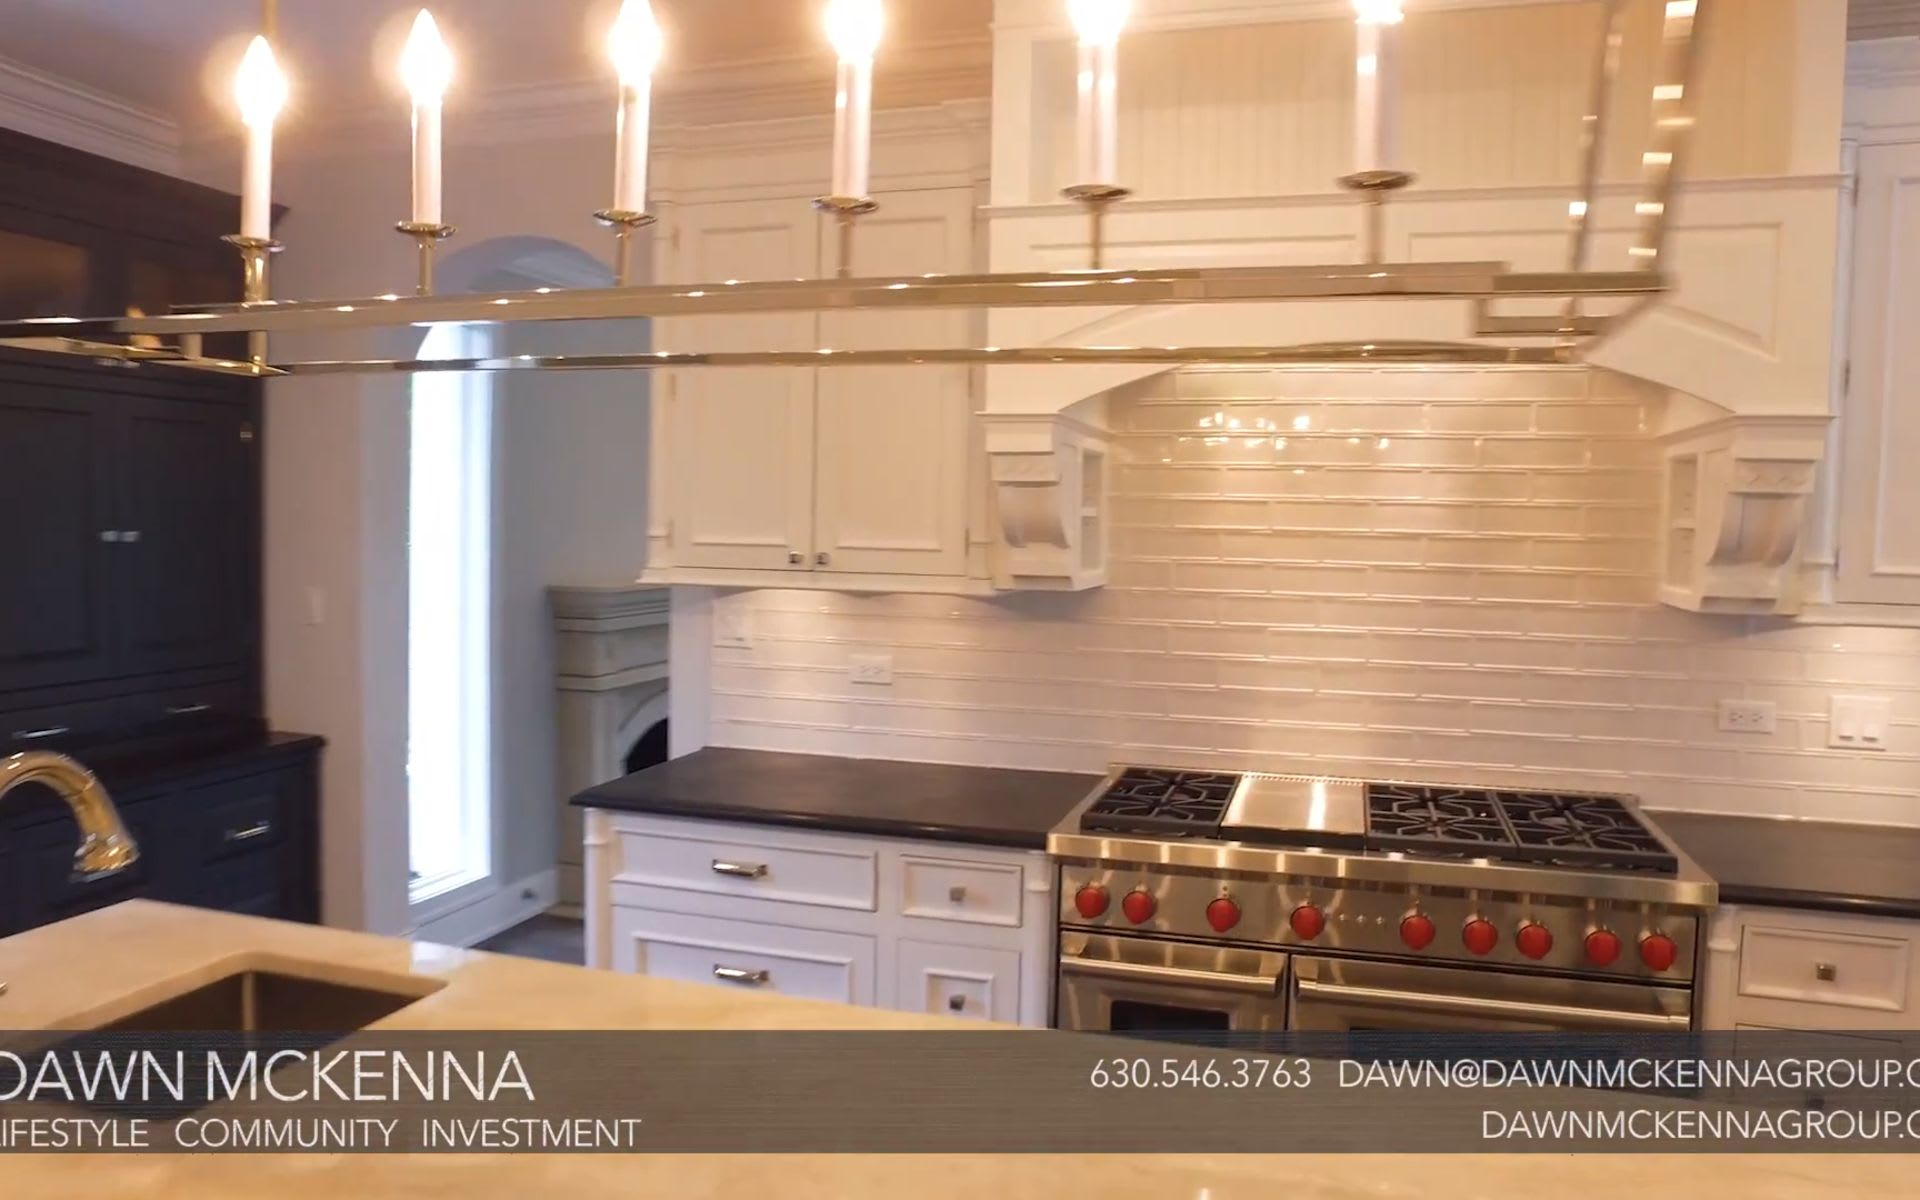 735 SOUTH COUNTY LINE ROAD, HINSDALE, IL DAWN MCKENNA GROUP video preview